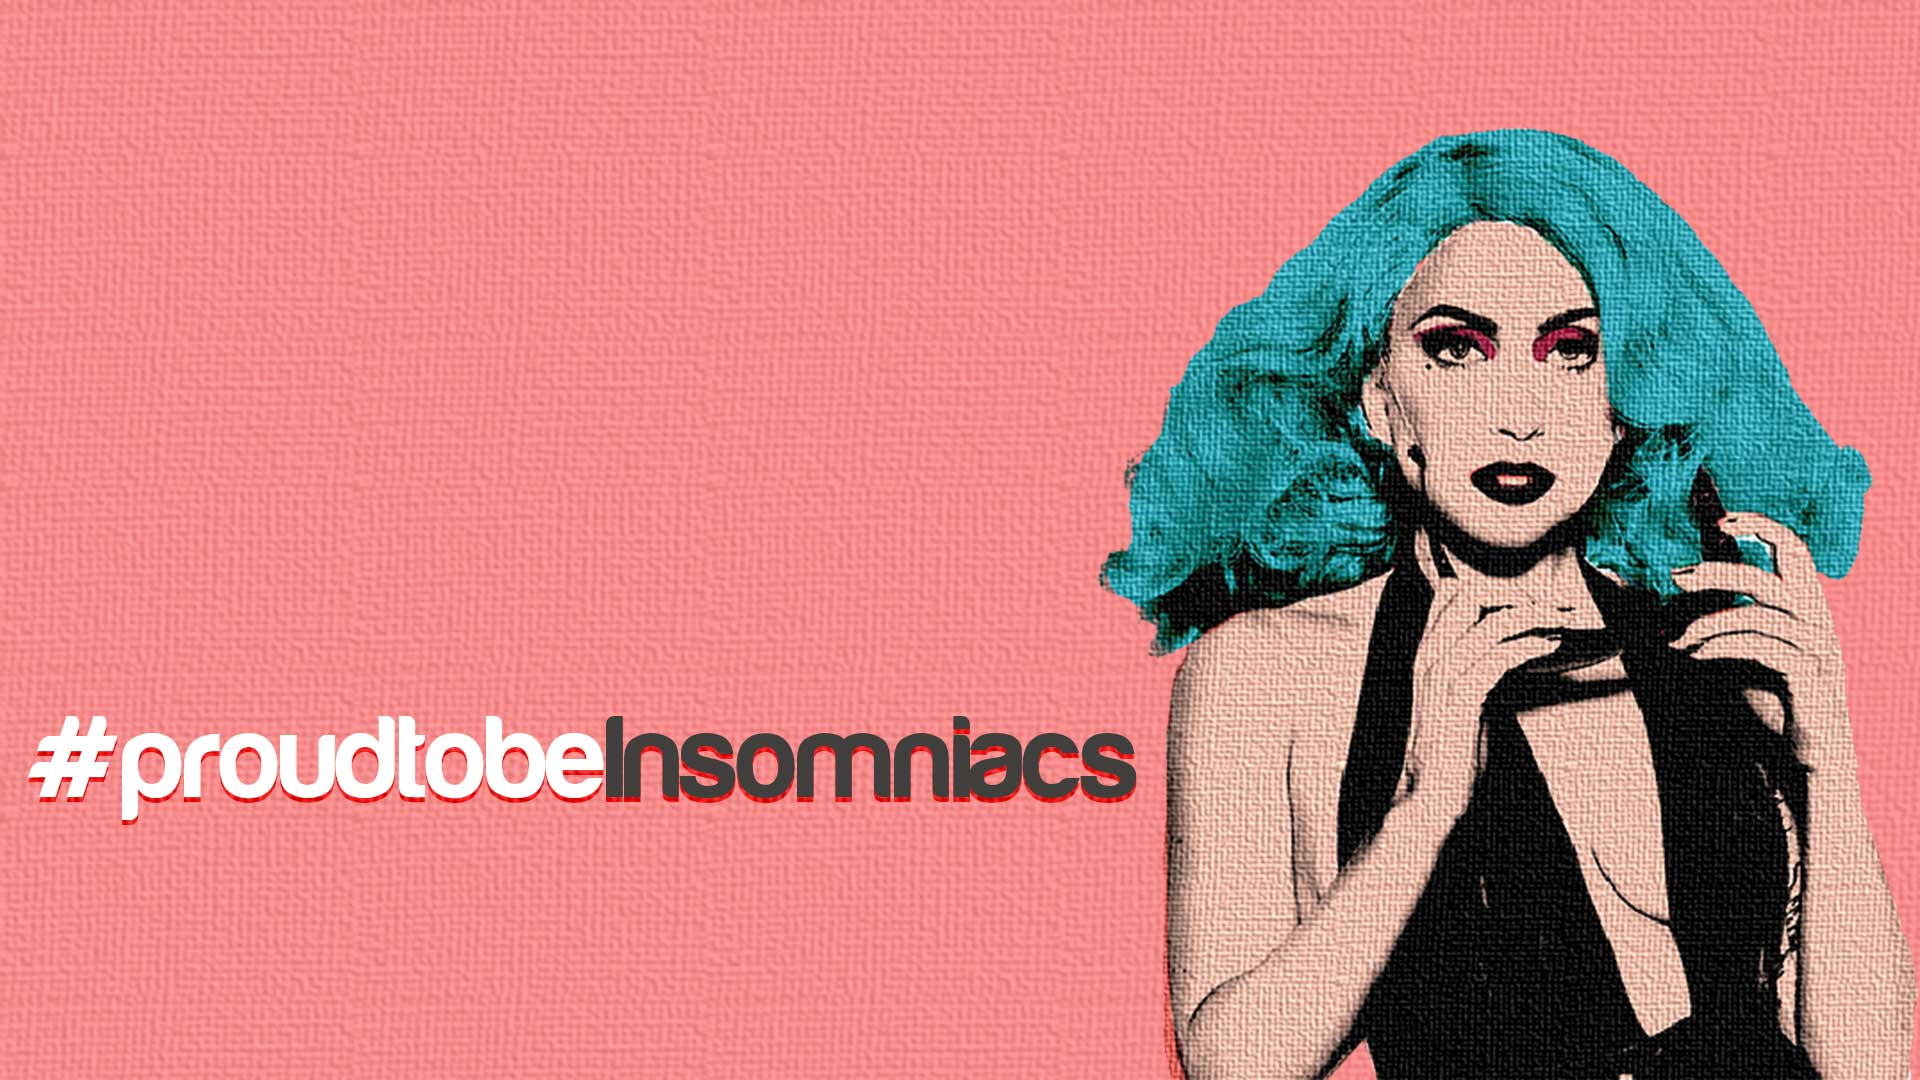 Famous insomniacs who are Celebrities!